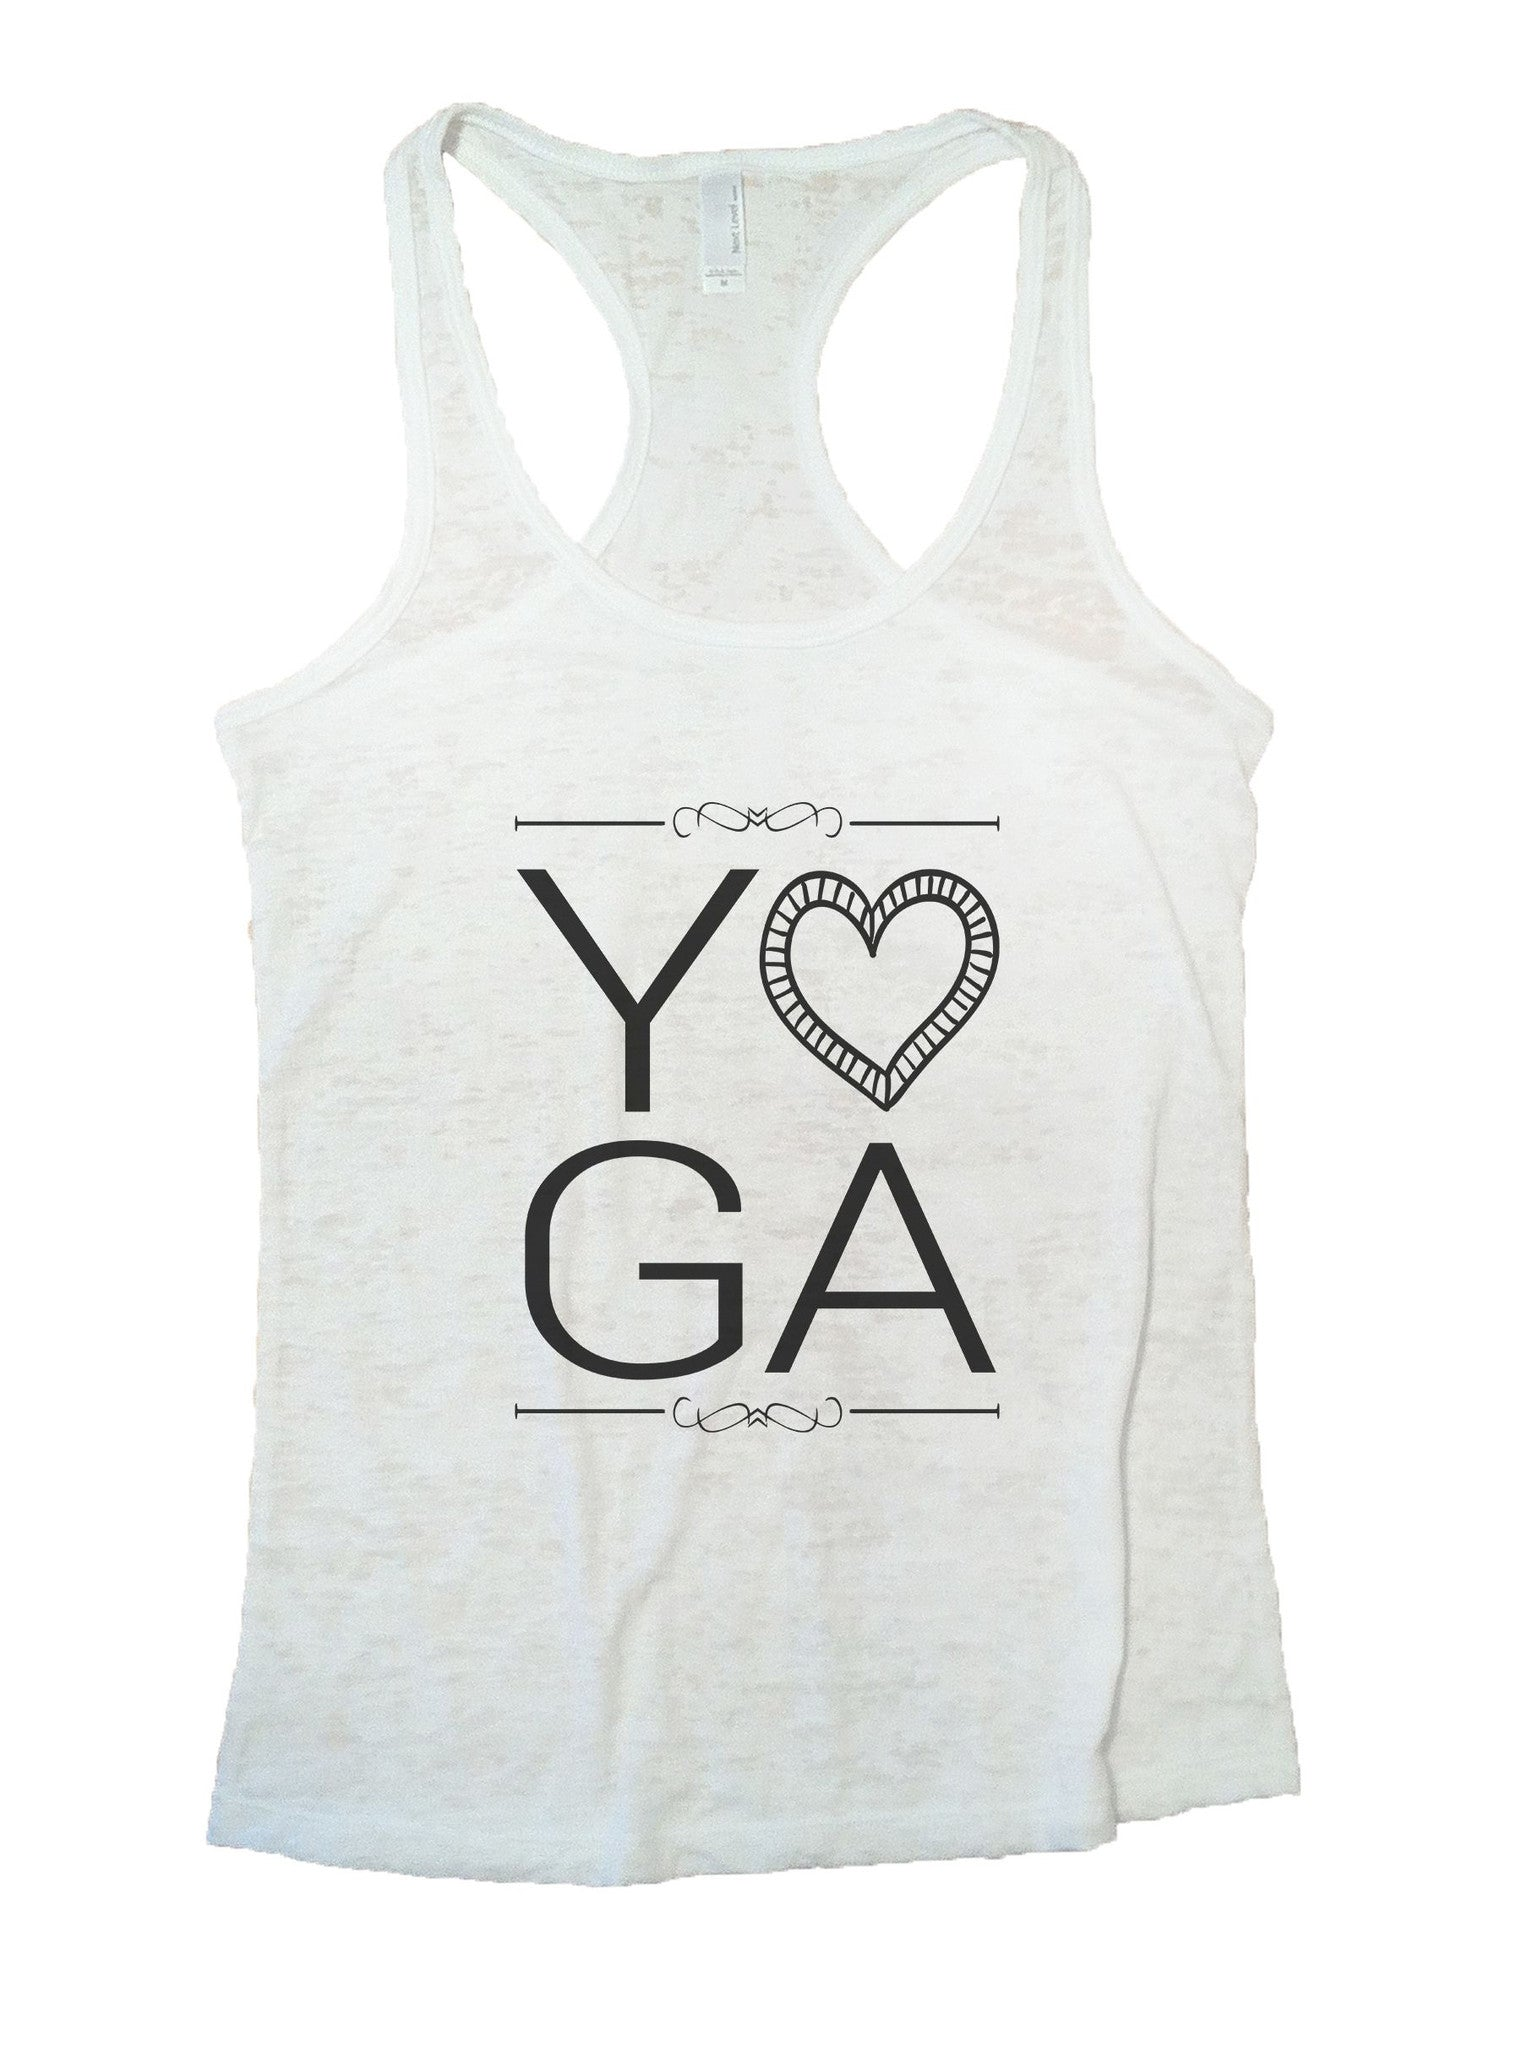 Yoga Burnout Tank Top By BurnoutTankTops.com - 838 - Funny Shirts Tank Tops Burnouts and Triblends  - 6